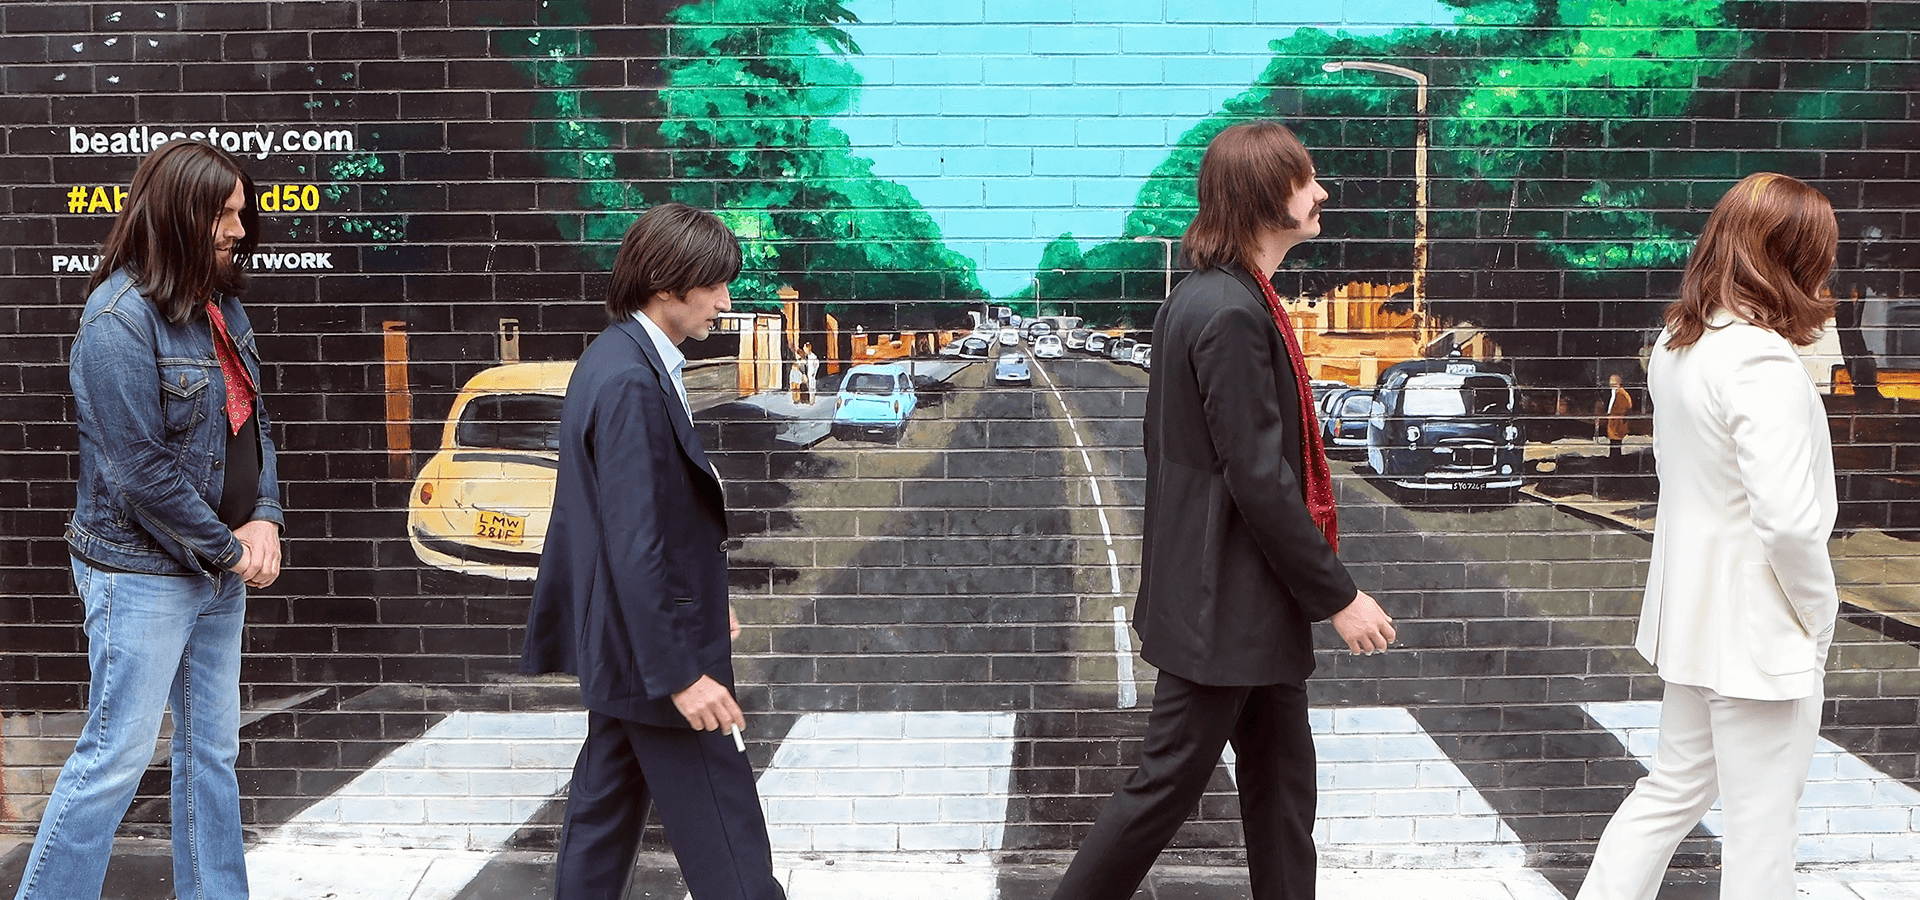 Come Together: Abbey Road in Liverpool